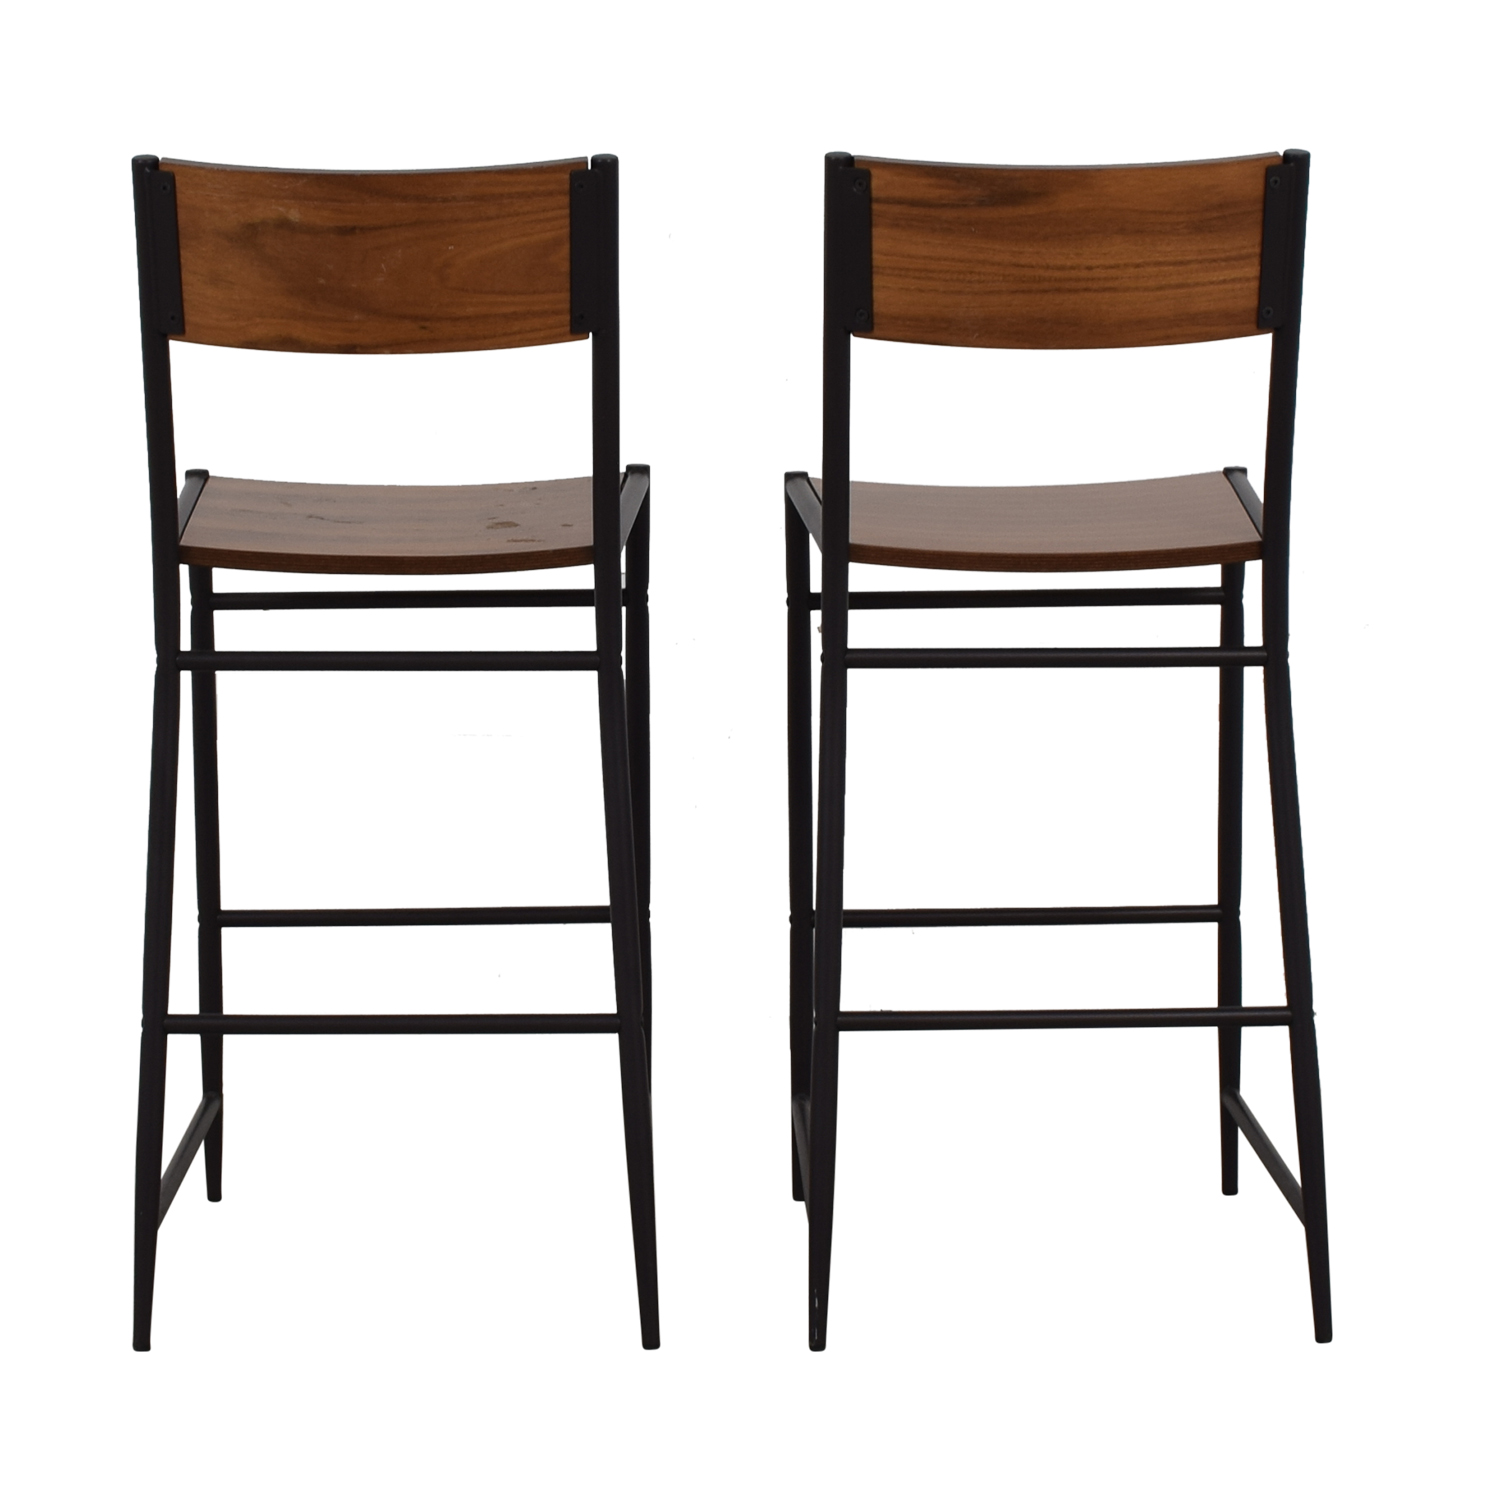 West Elm West Elm Rustic Wood Bar Stools